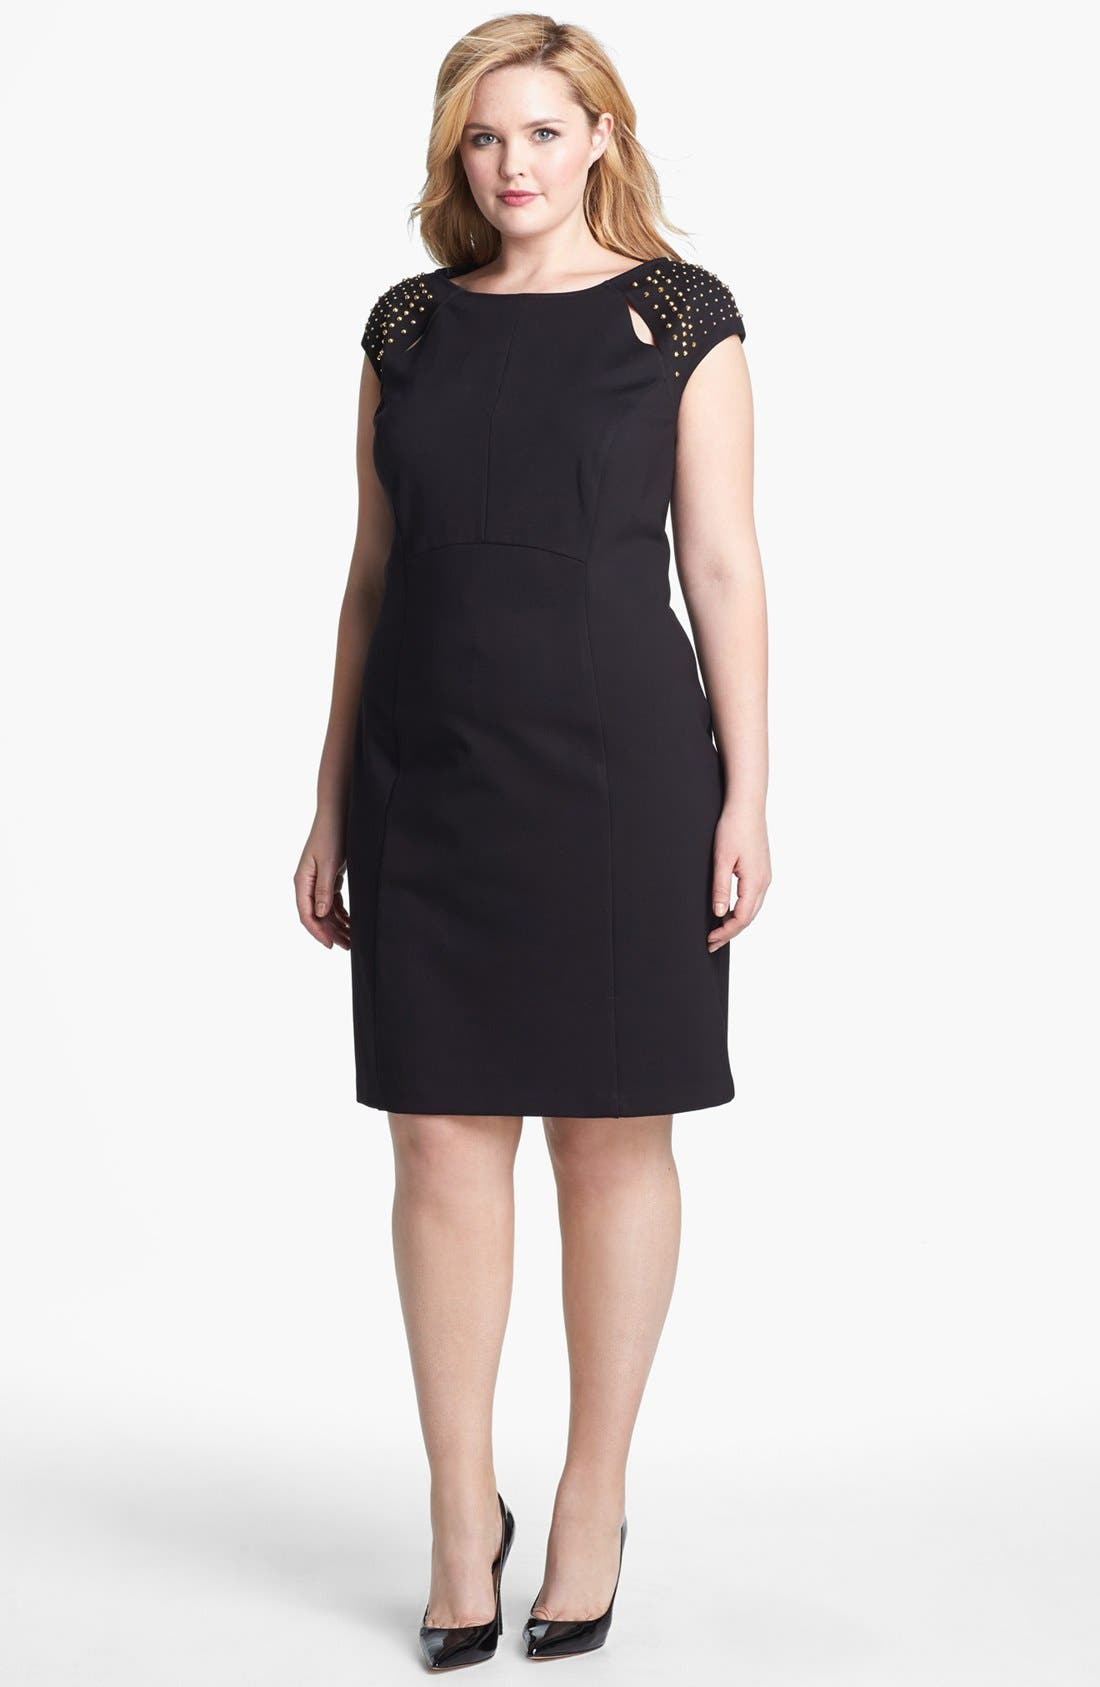 Alternate Image 1 Selected - ABS by Allen Schwartz Studded Sheath Dress (Plus Size)